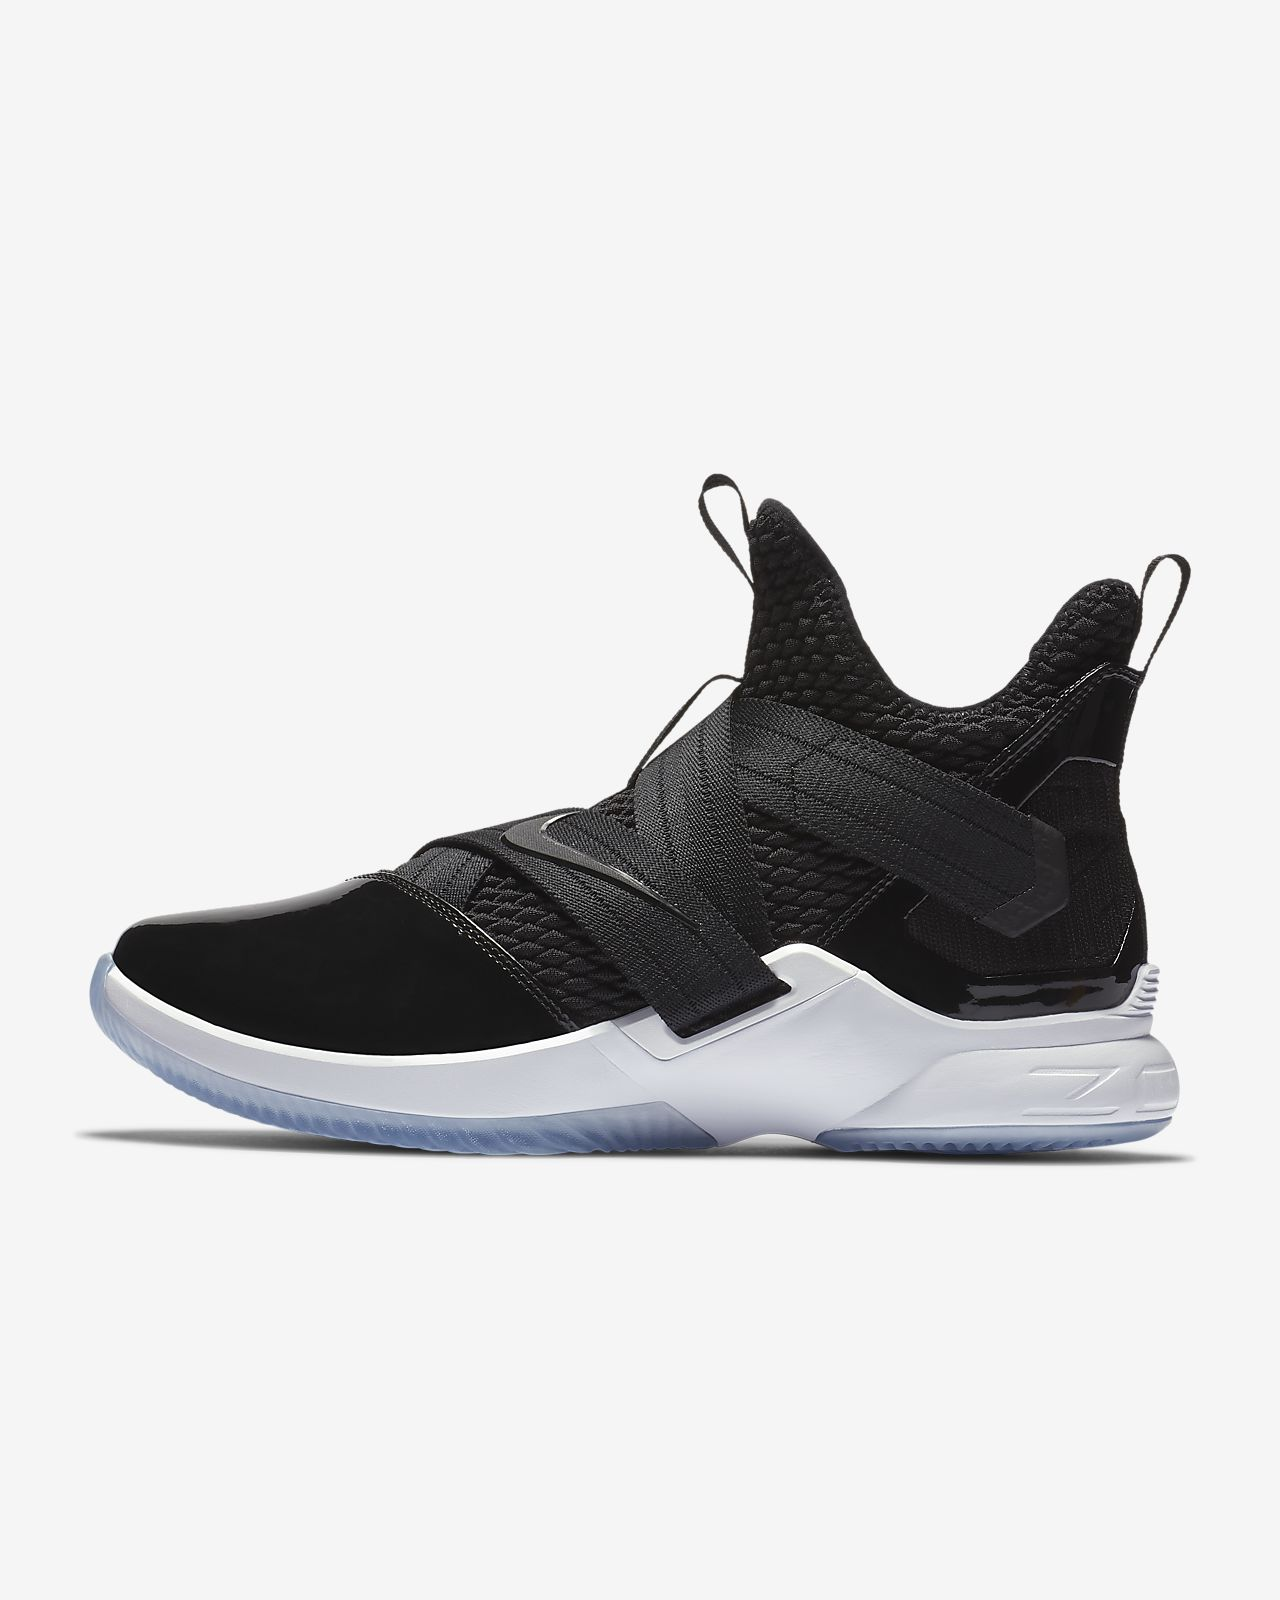 premium selection 1e933 49be4 Basketball Shoe. LeBron Soldier 12 SFG